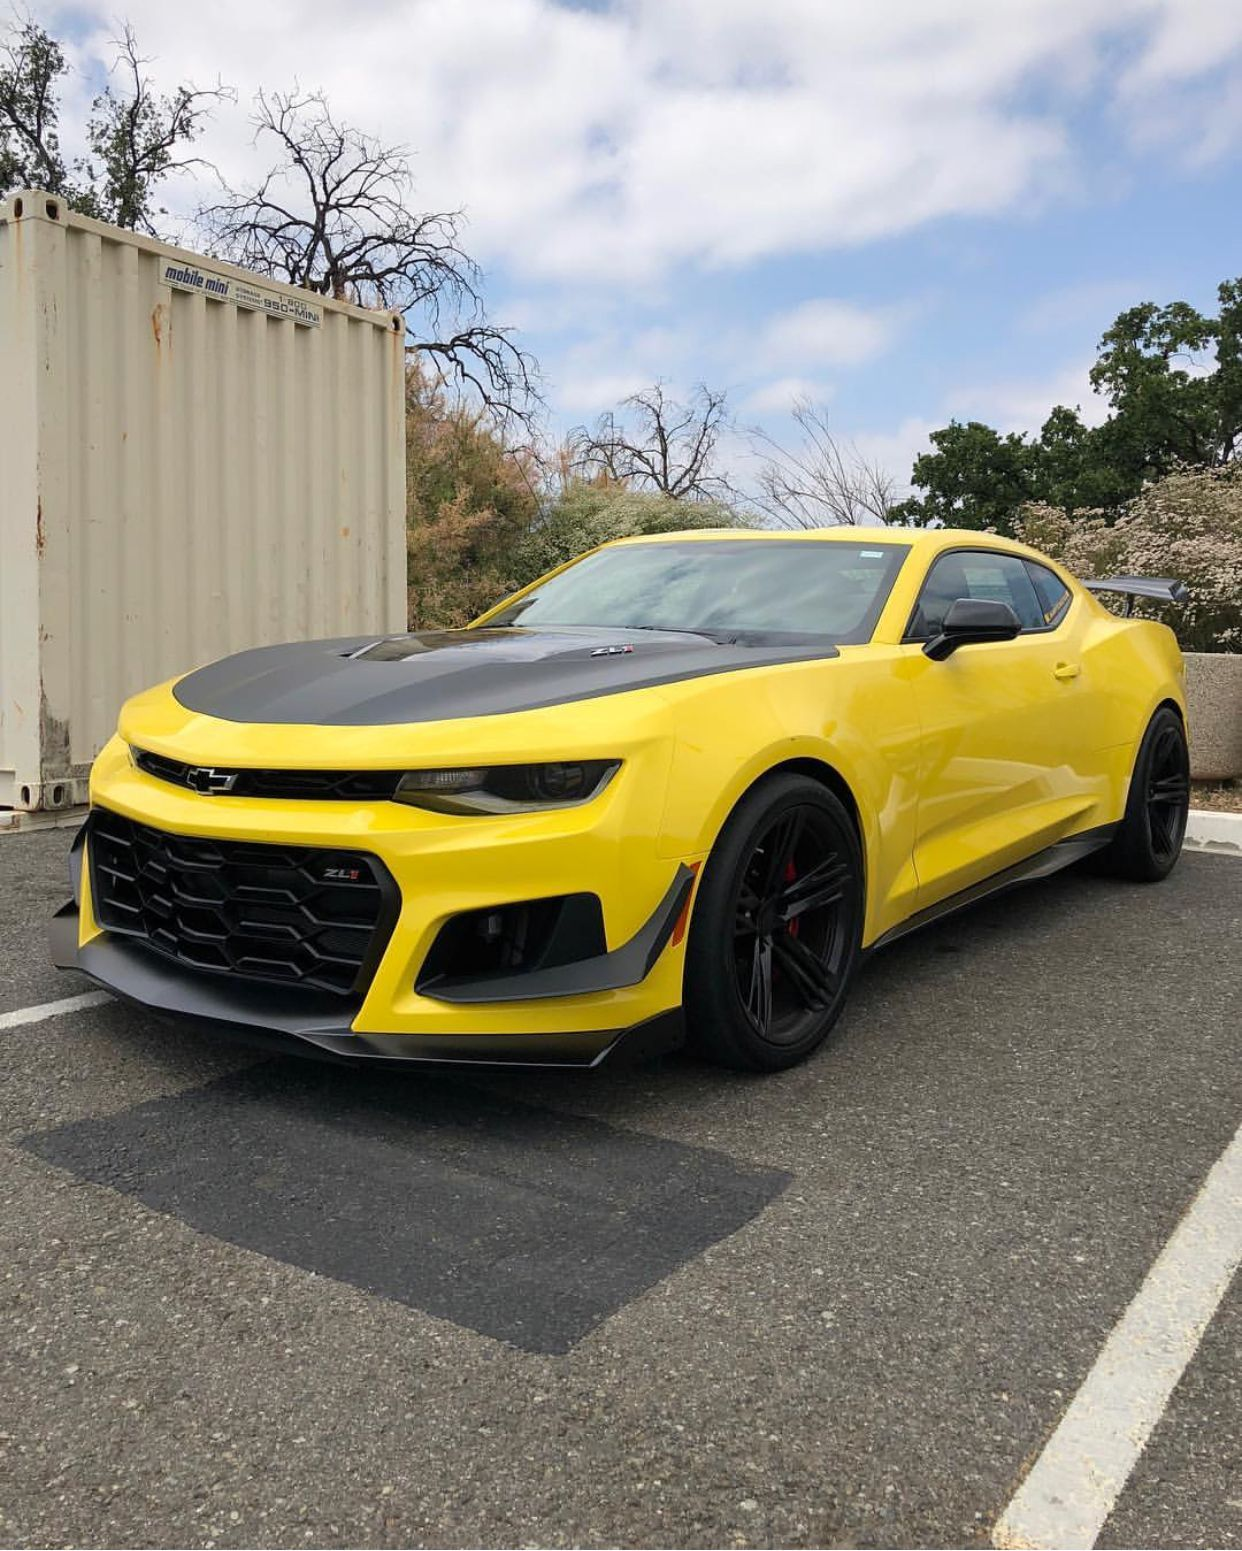 chevrolet camaro zl1 1le painted in bright yellow photo taken by rh pinterest com